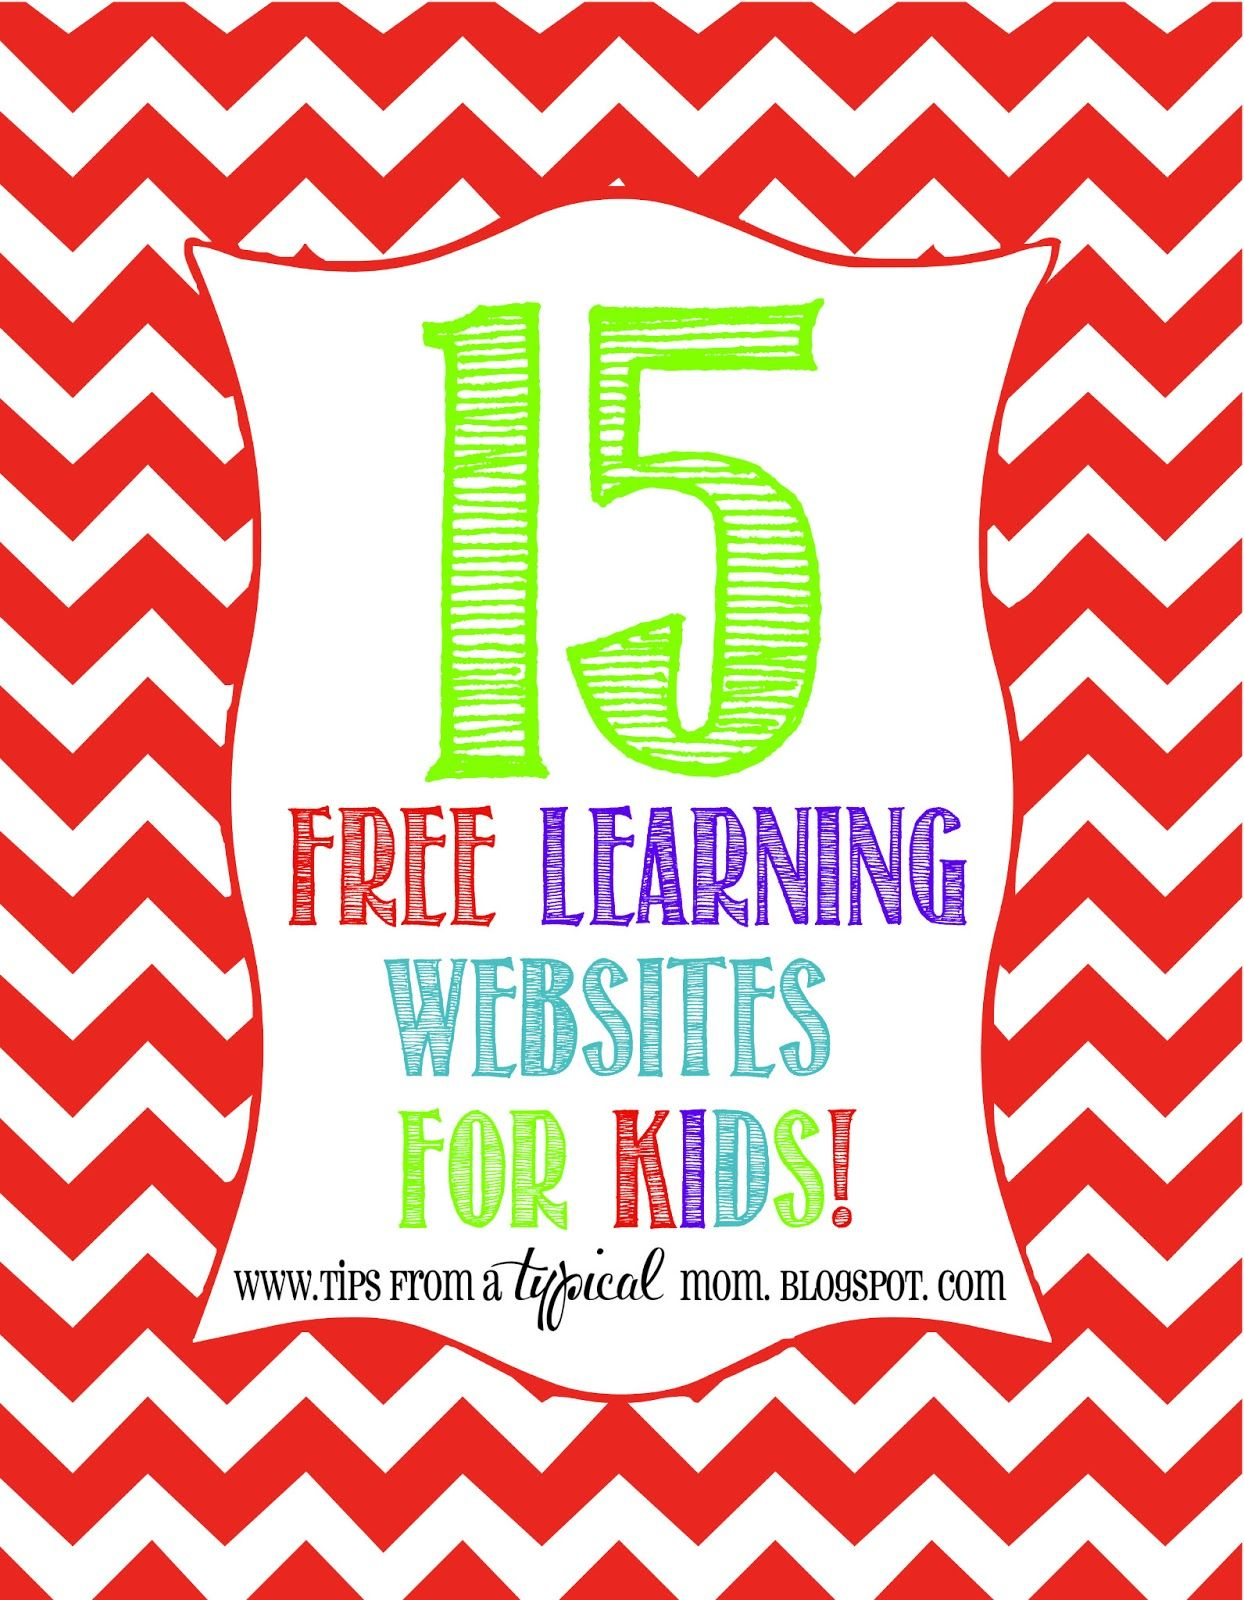 15 Free Learning Websites For Kids